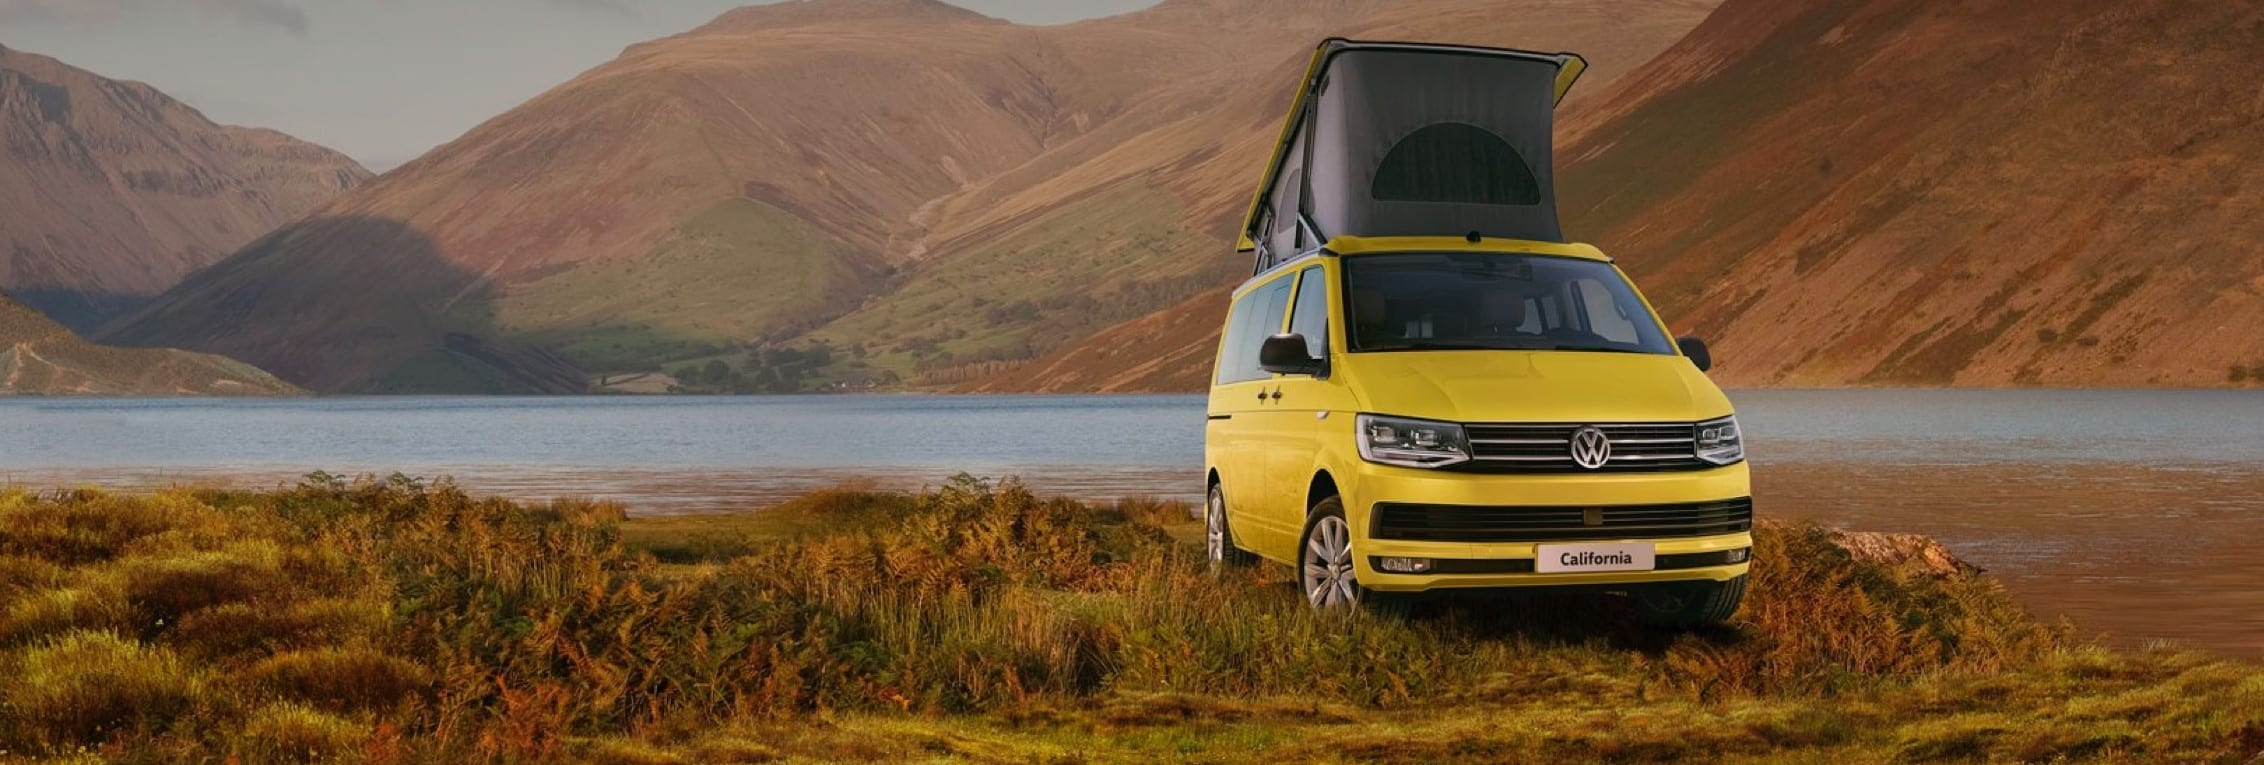 A yellow VW California campervan parked in front of a lake and mountain range.